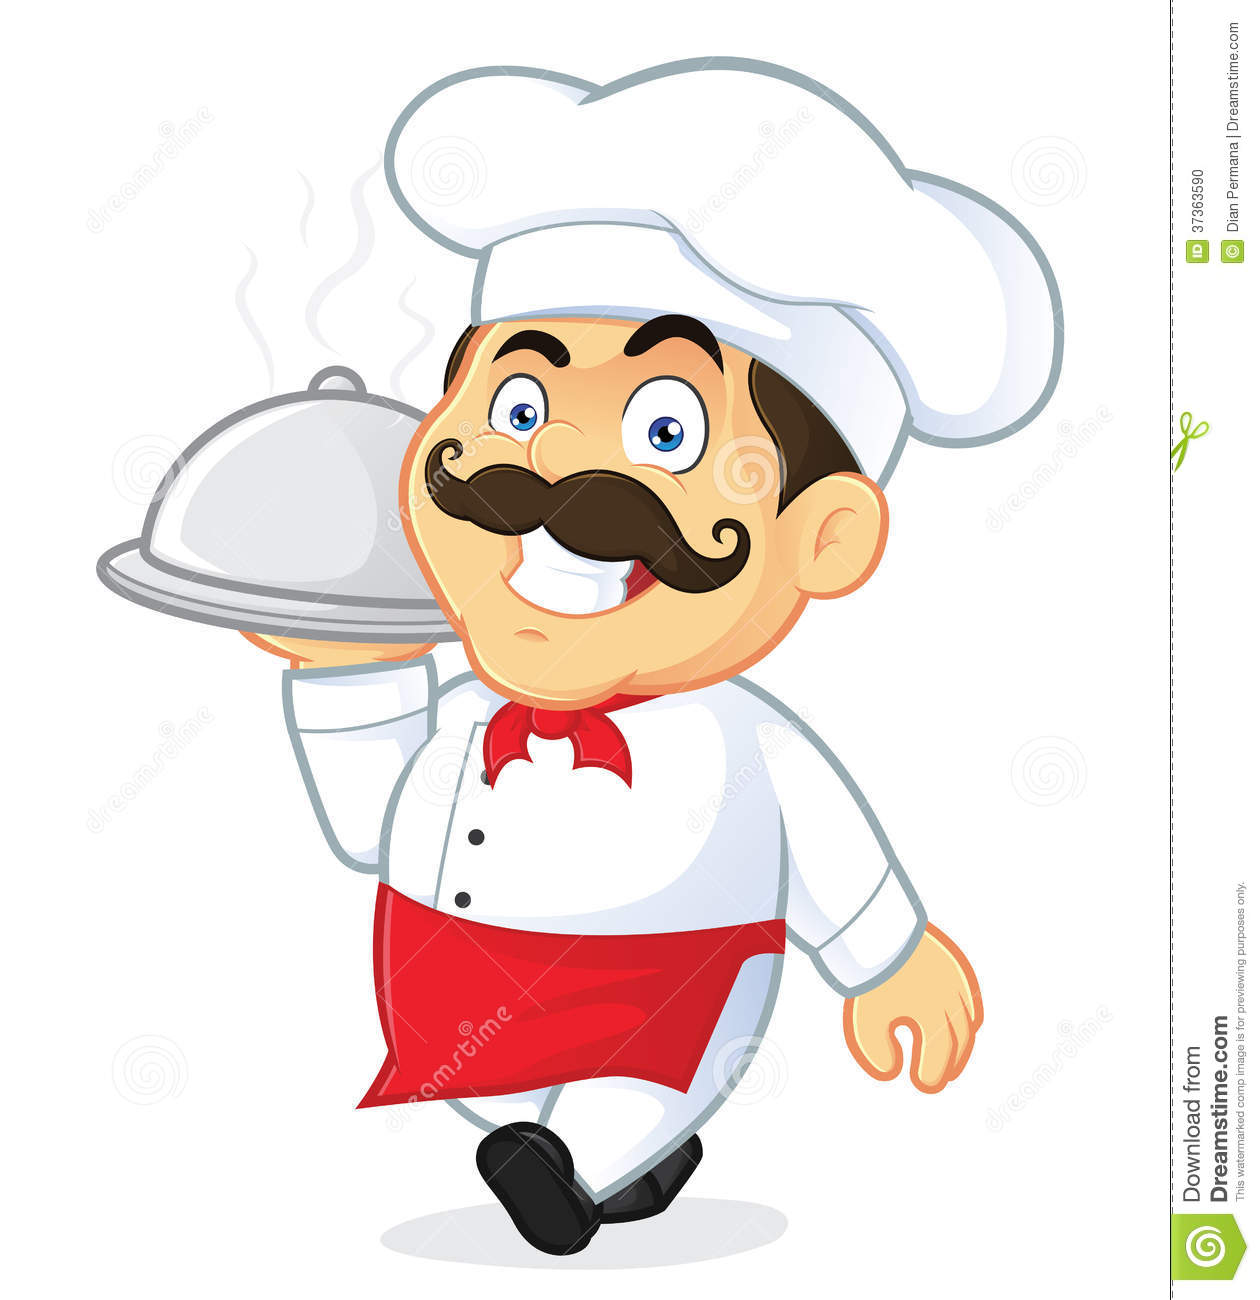 Catering Chef Clipart b014bdbab6f1